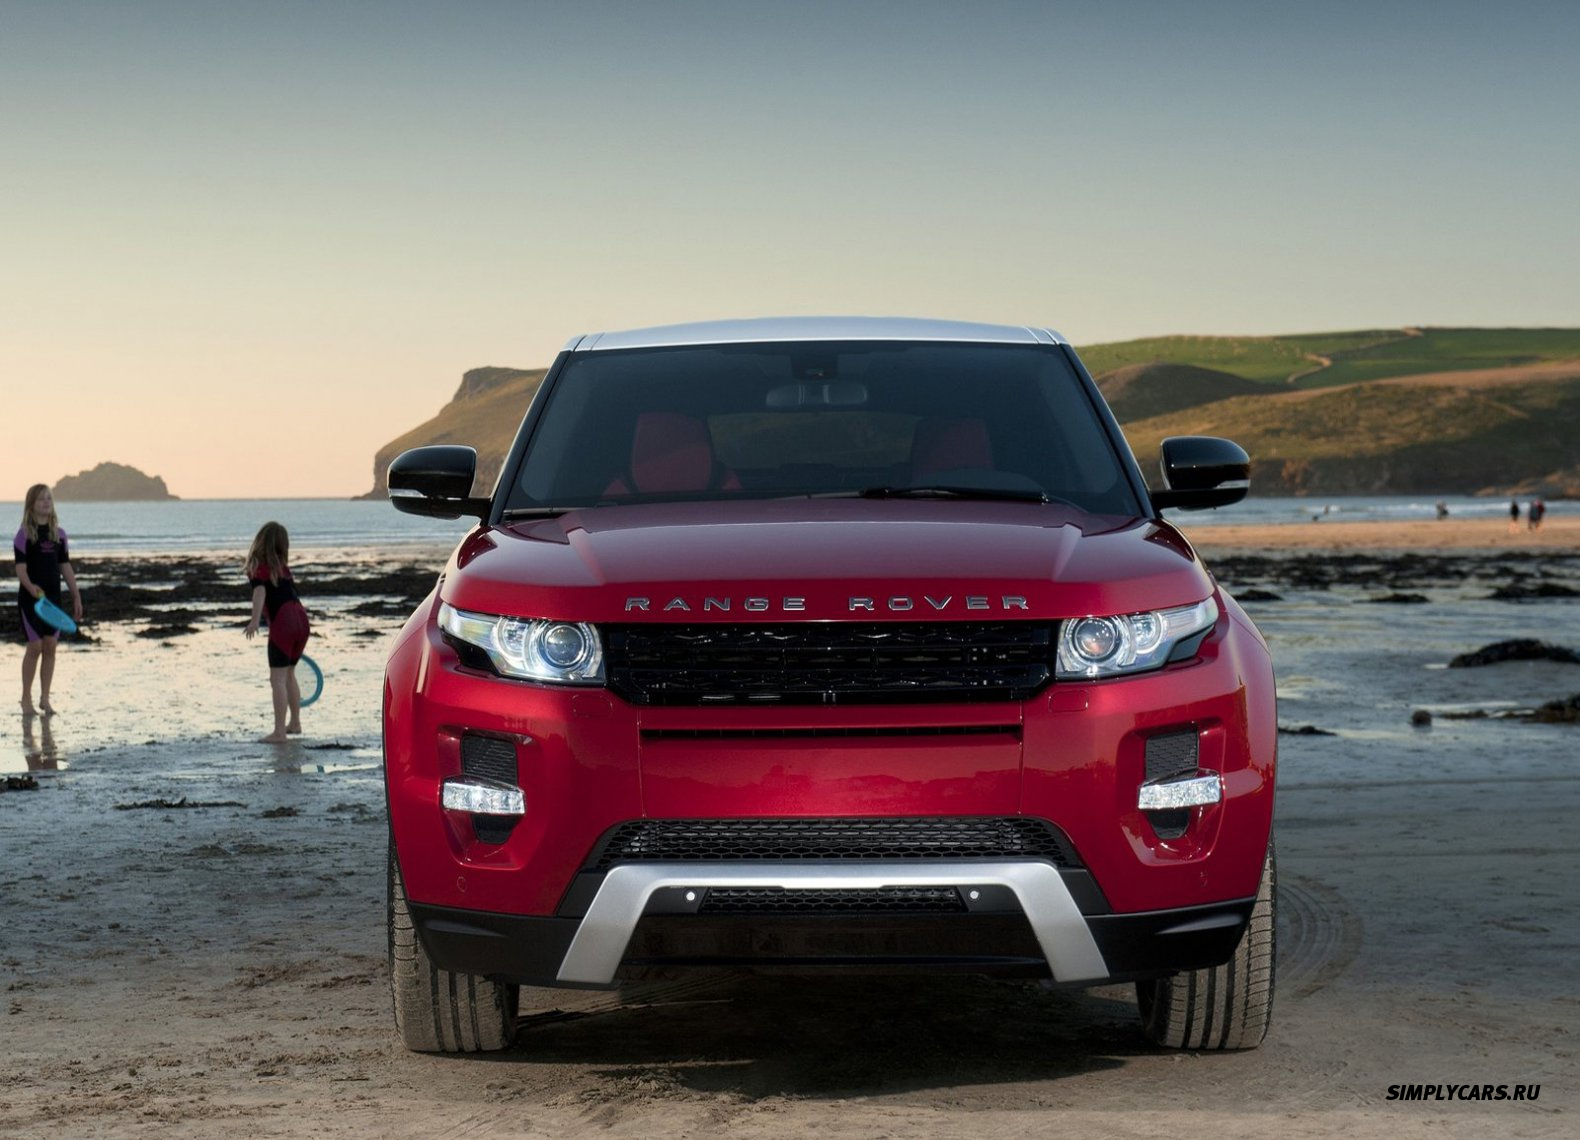 Land rover range evoque photos wallpapers Human Nature 100 Natural Sunflower Beauty Oil Review